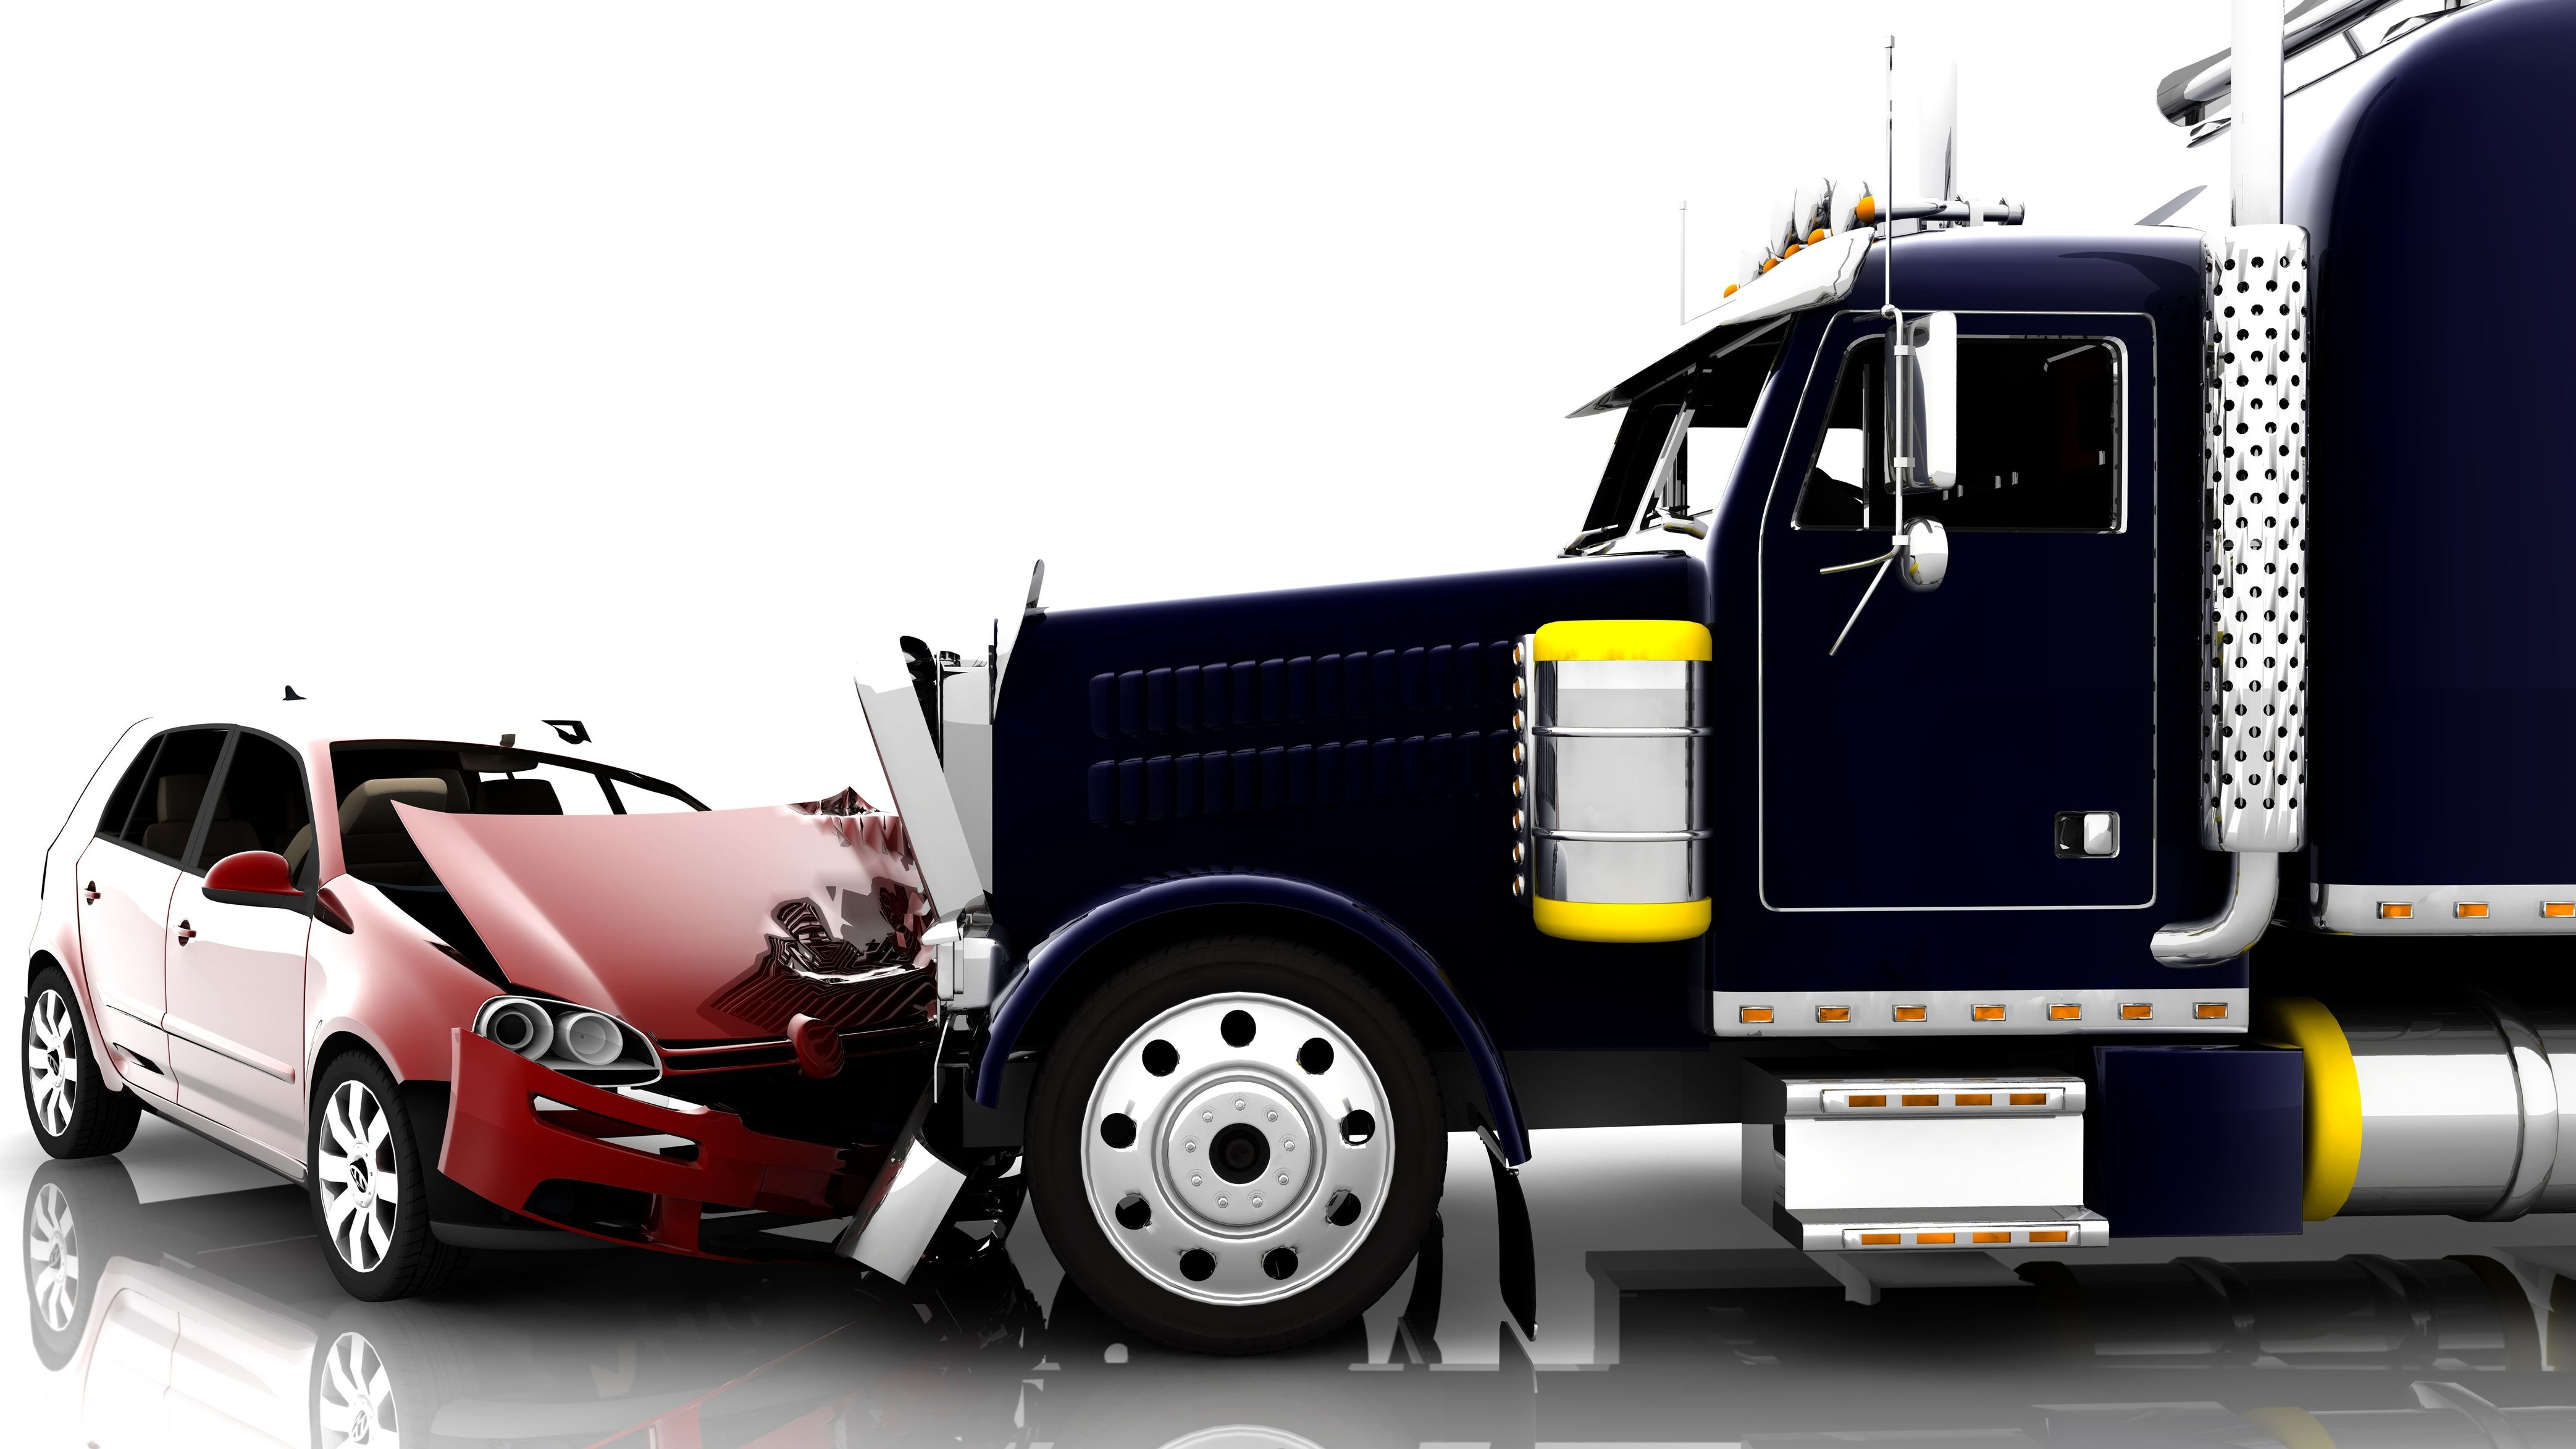 Wreck clipart truck accident #5